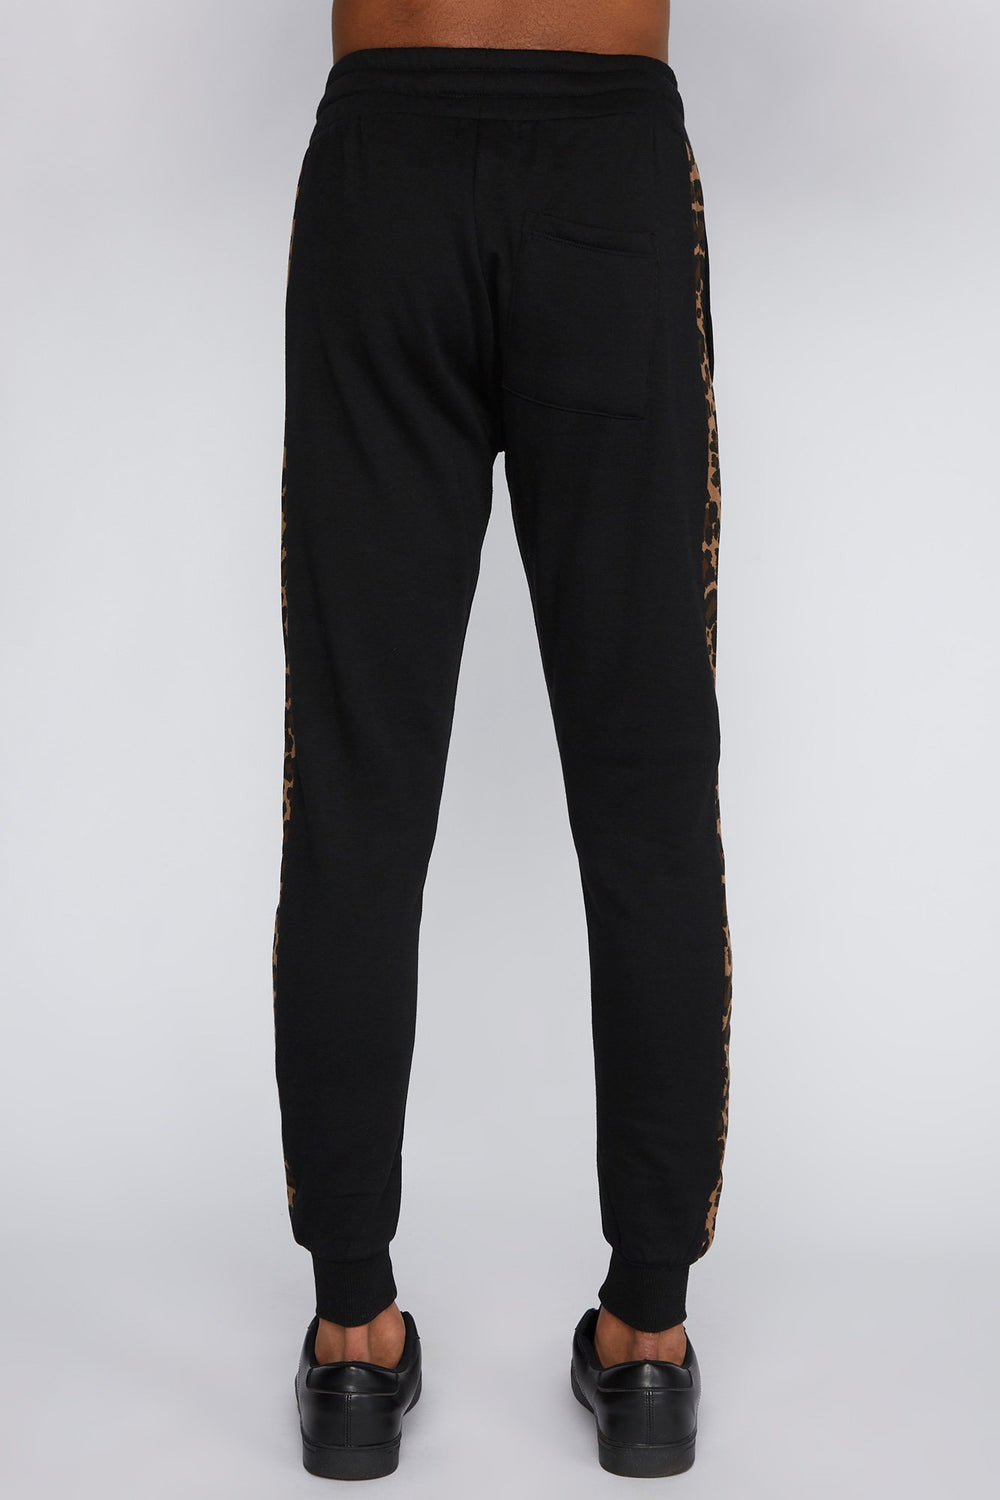 Young & Reckless Mens Leopard Print Jogger Black